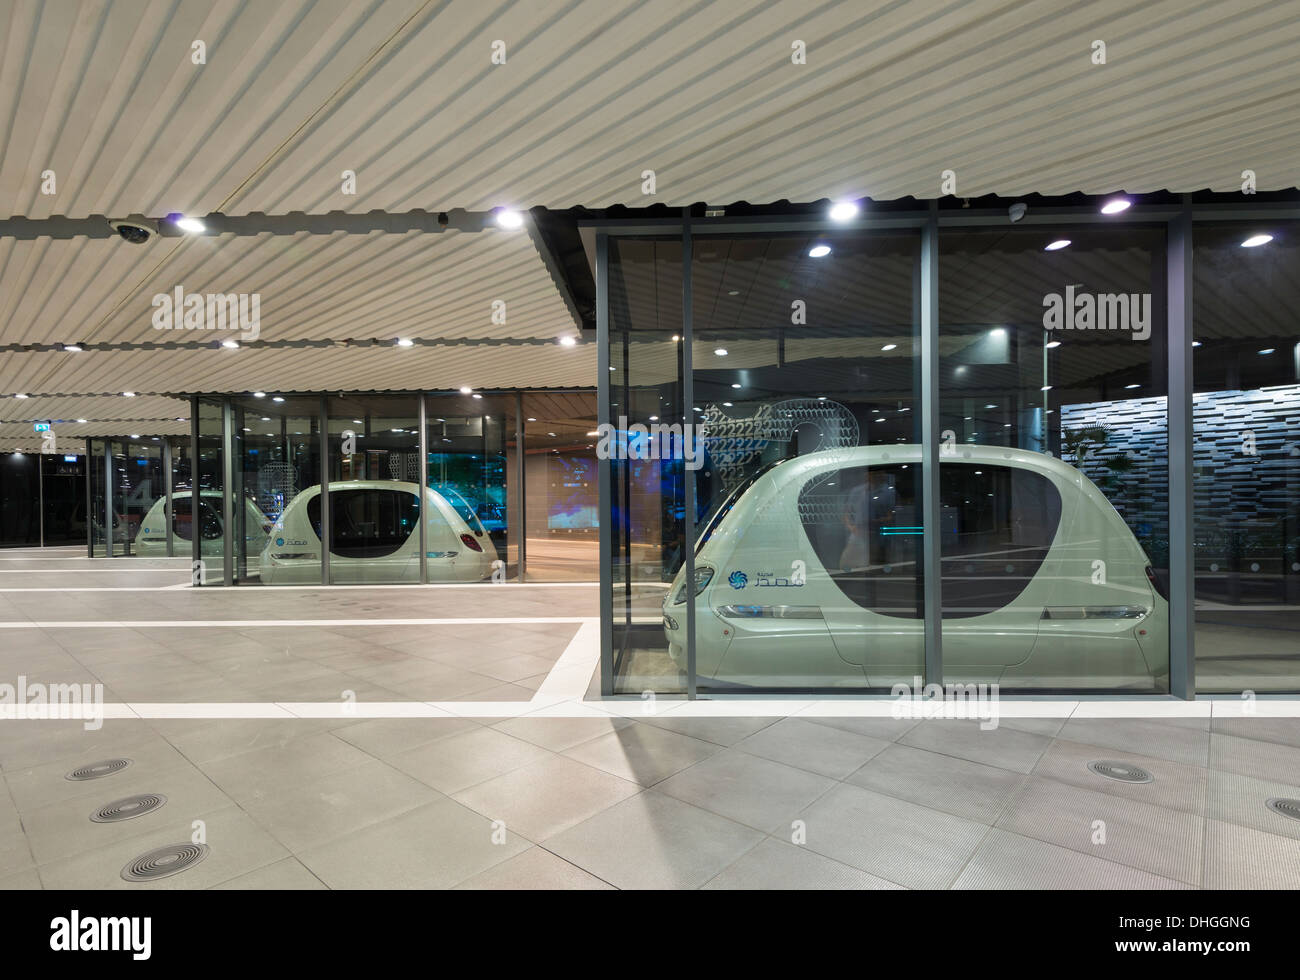 Driverless PRT Personal Rapid Transport Pod cars at Masdar City technical institute in Abu Dhabi United Arab Emirates - Stock Image